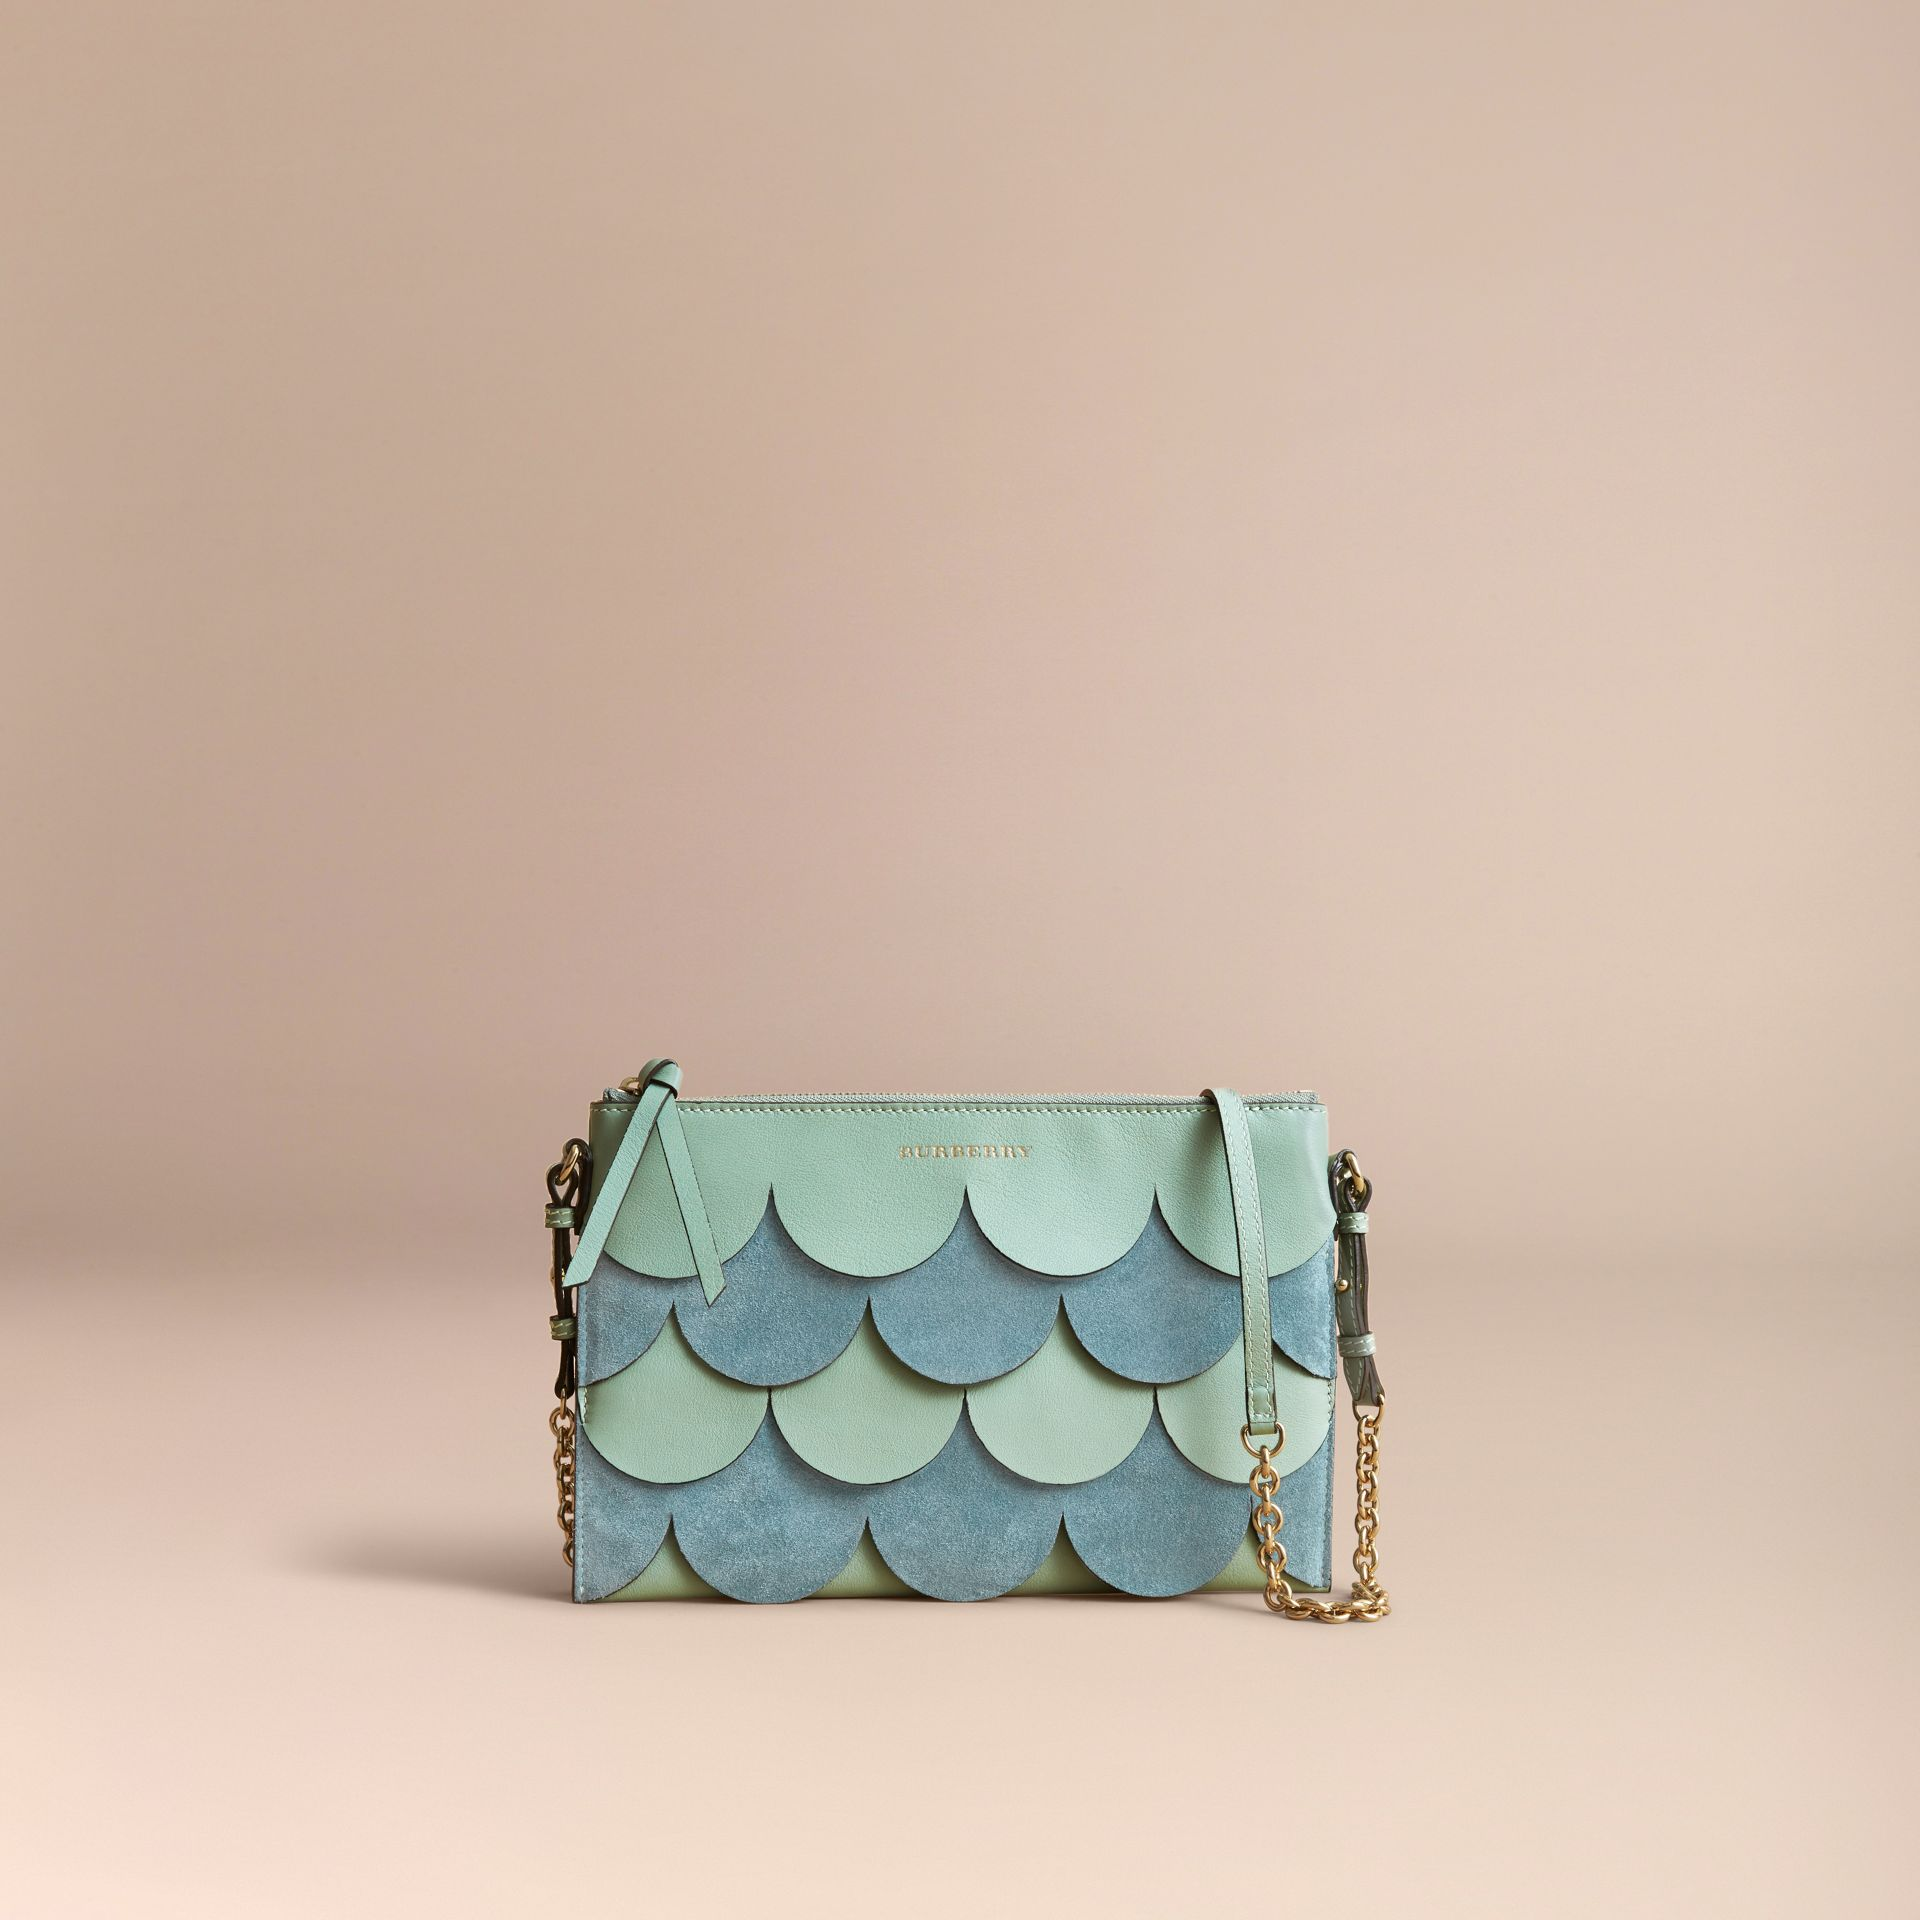 Two-tone Scalloped Leather and Suede Clutch Bag in Celadon Green - Women | Burberry Australia - gallery image 8